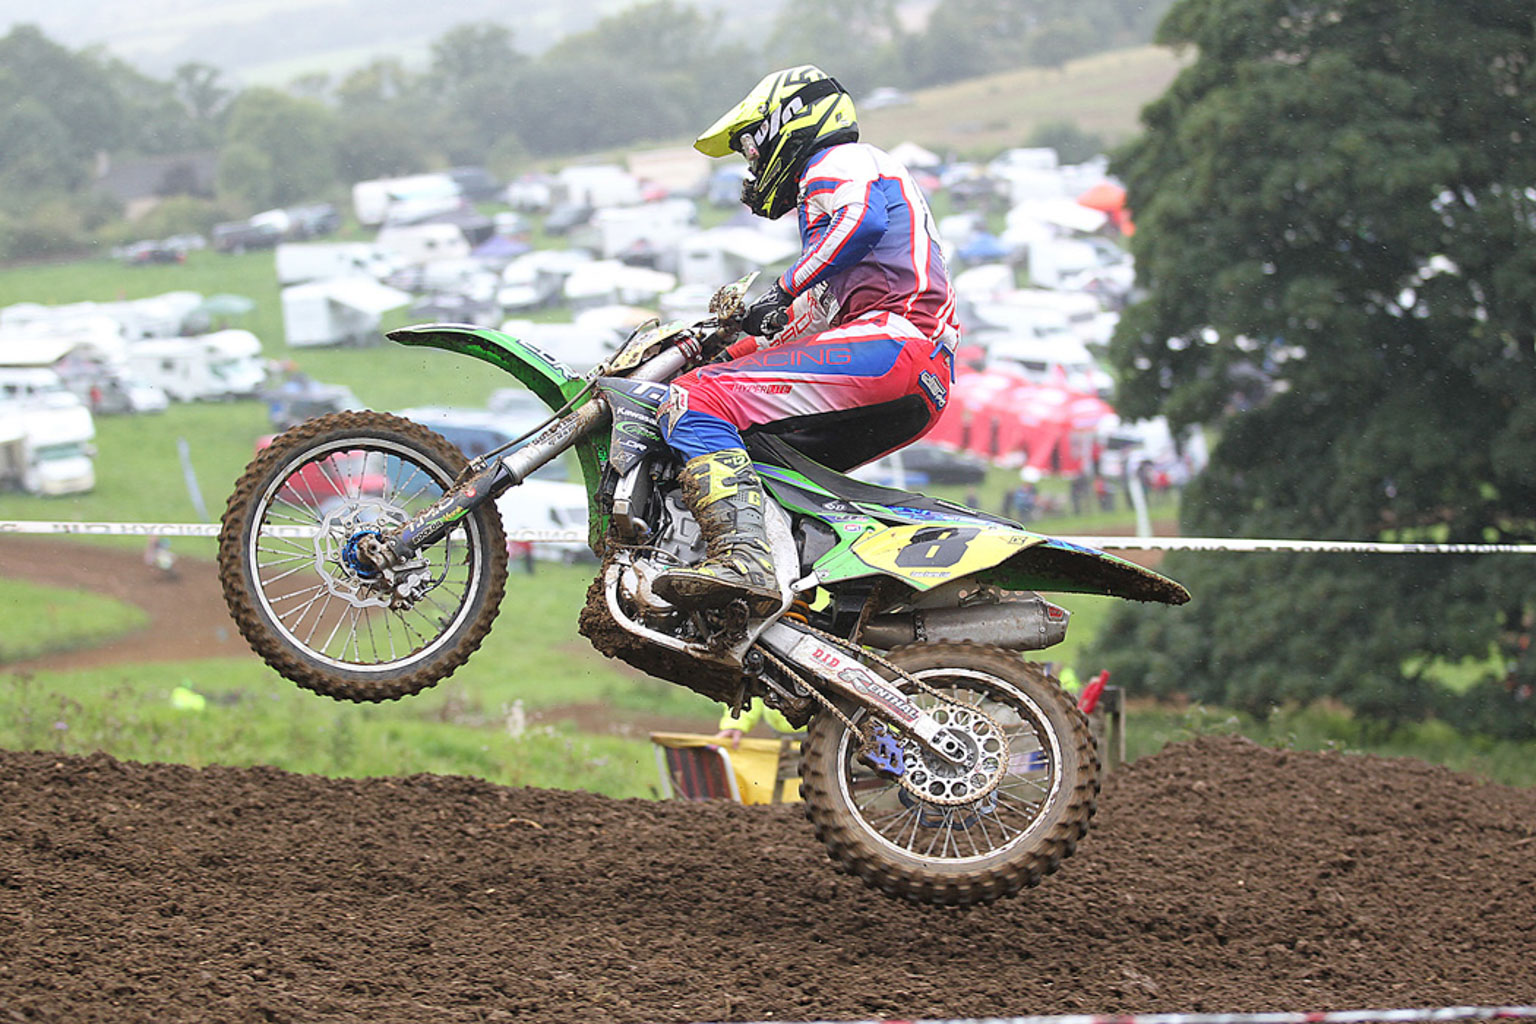 Matt Ridgway, 6th in MX1